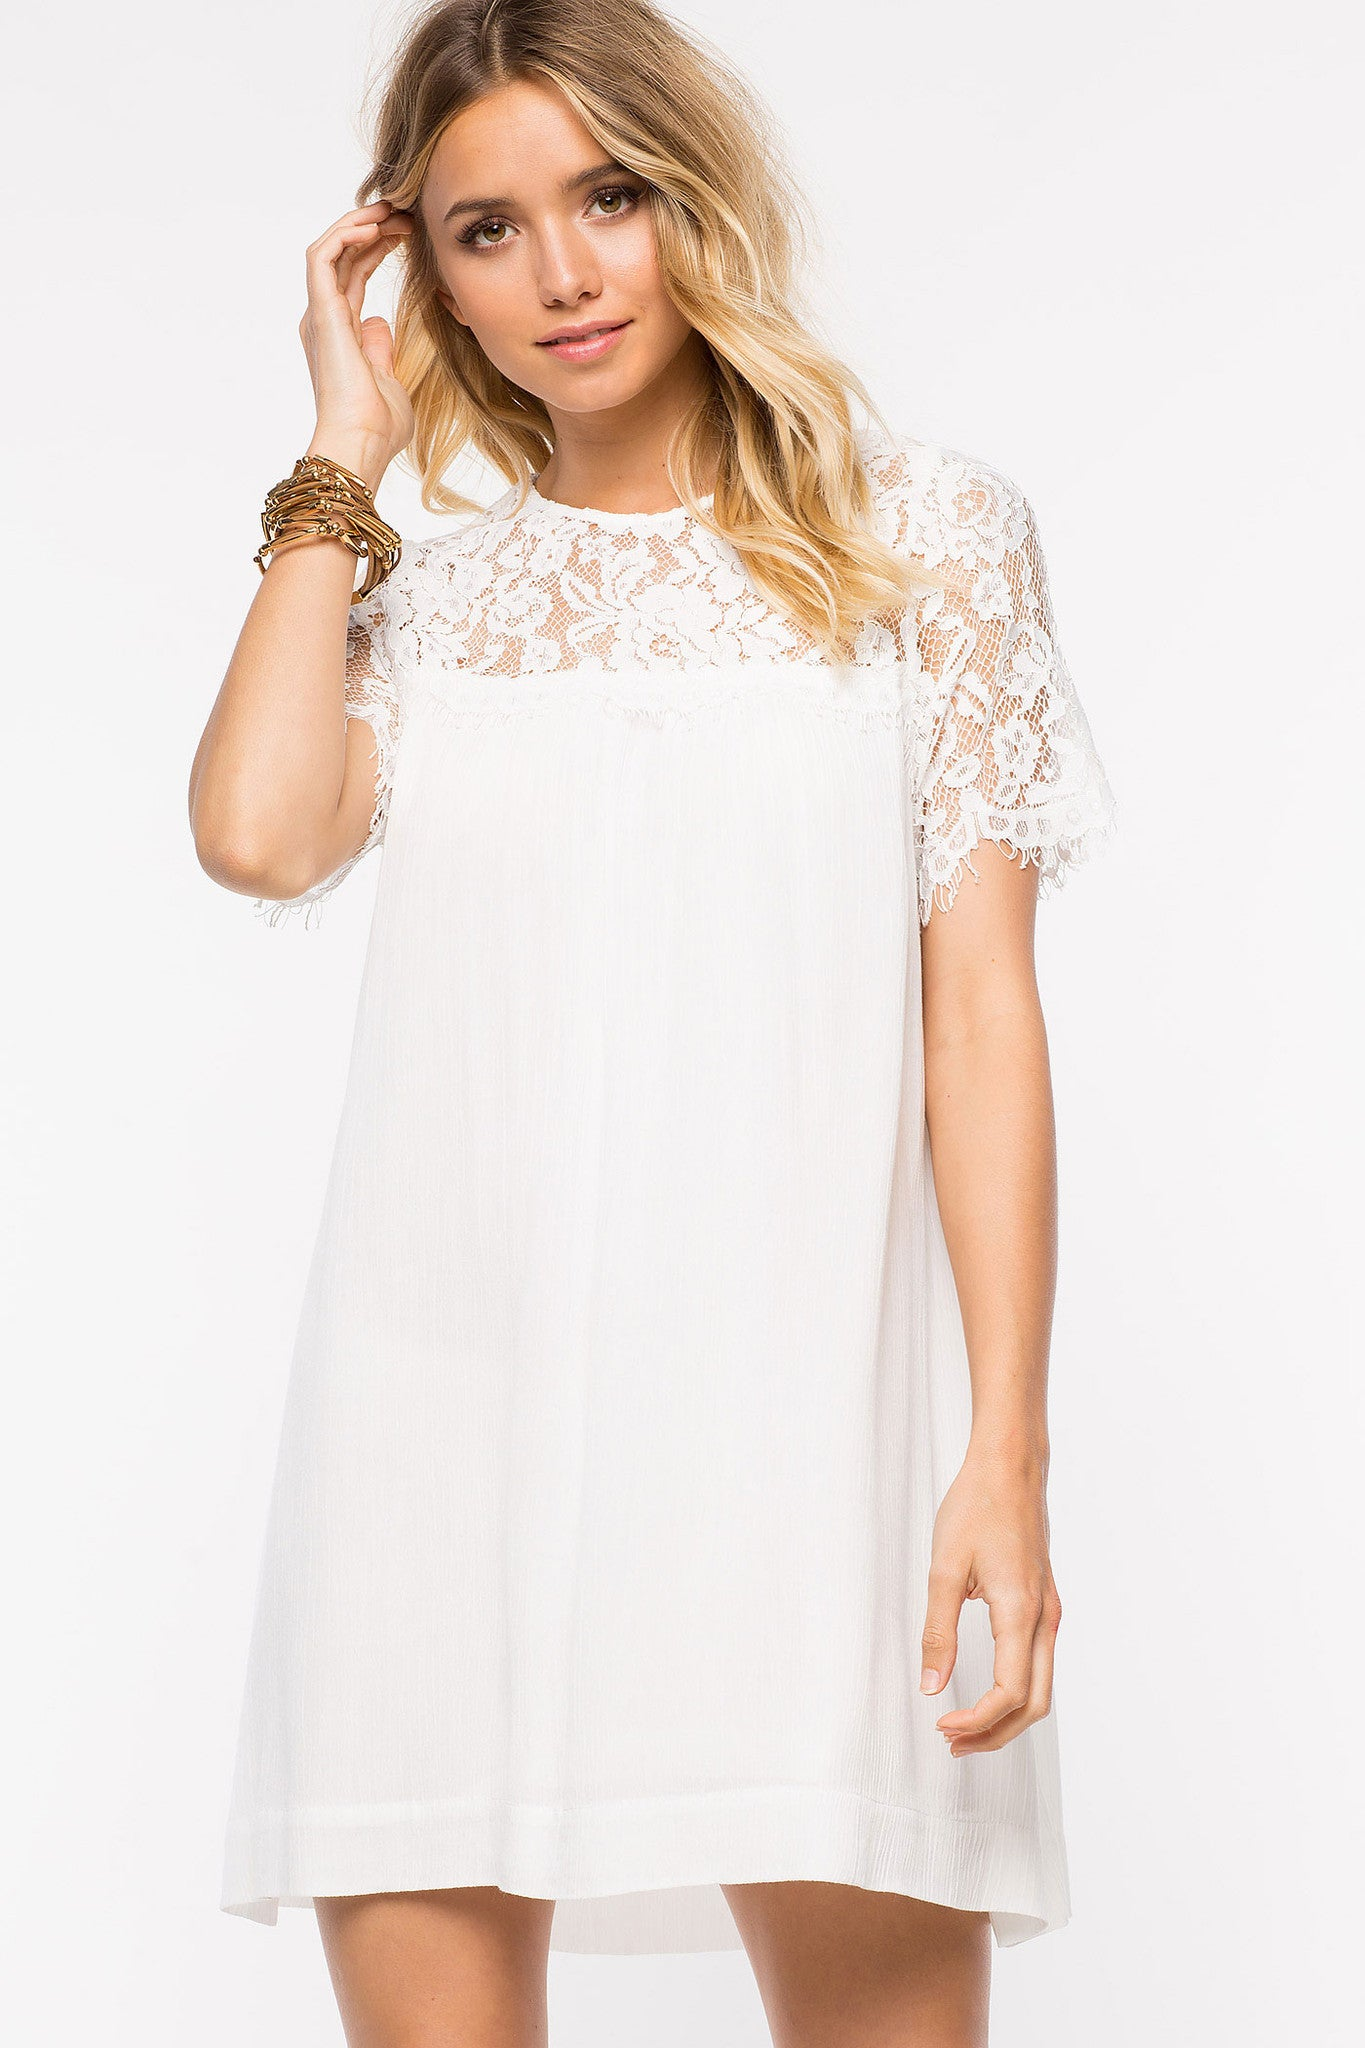 short sleeve white lace mini shift party dress. Front view